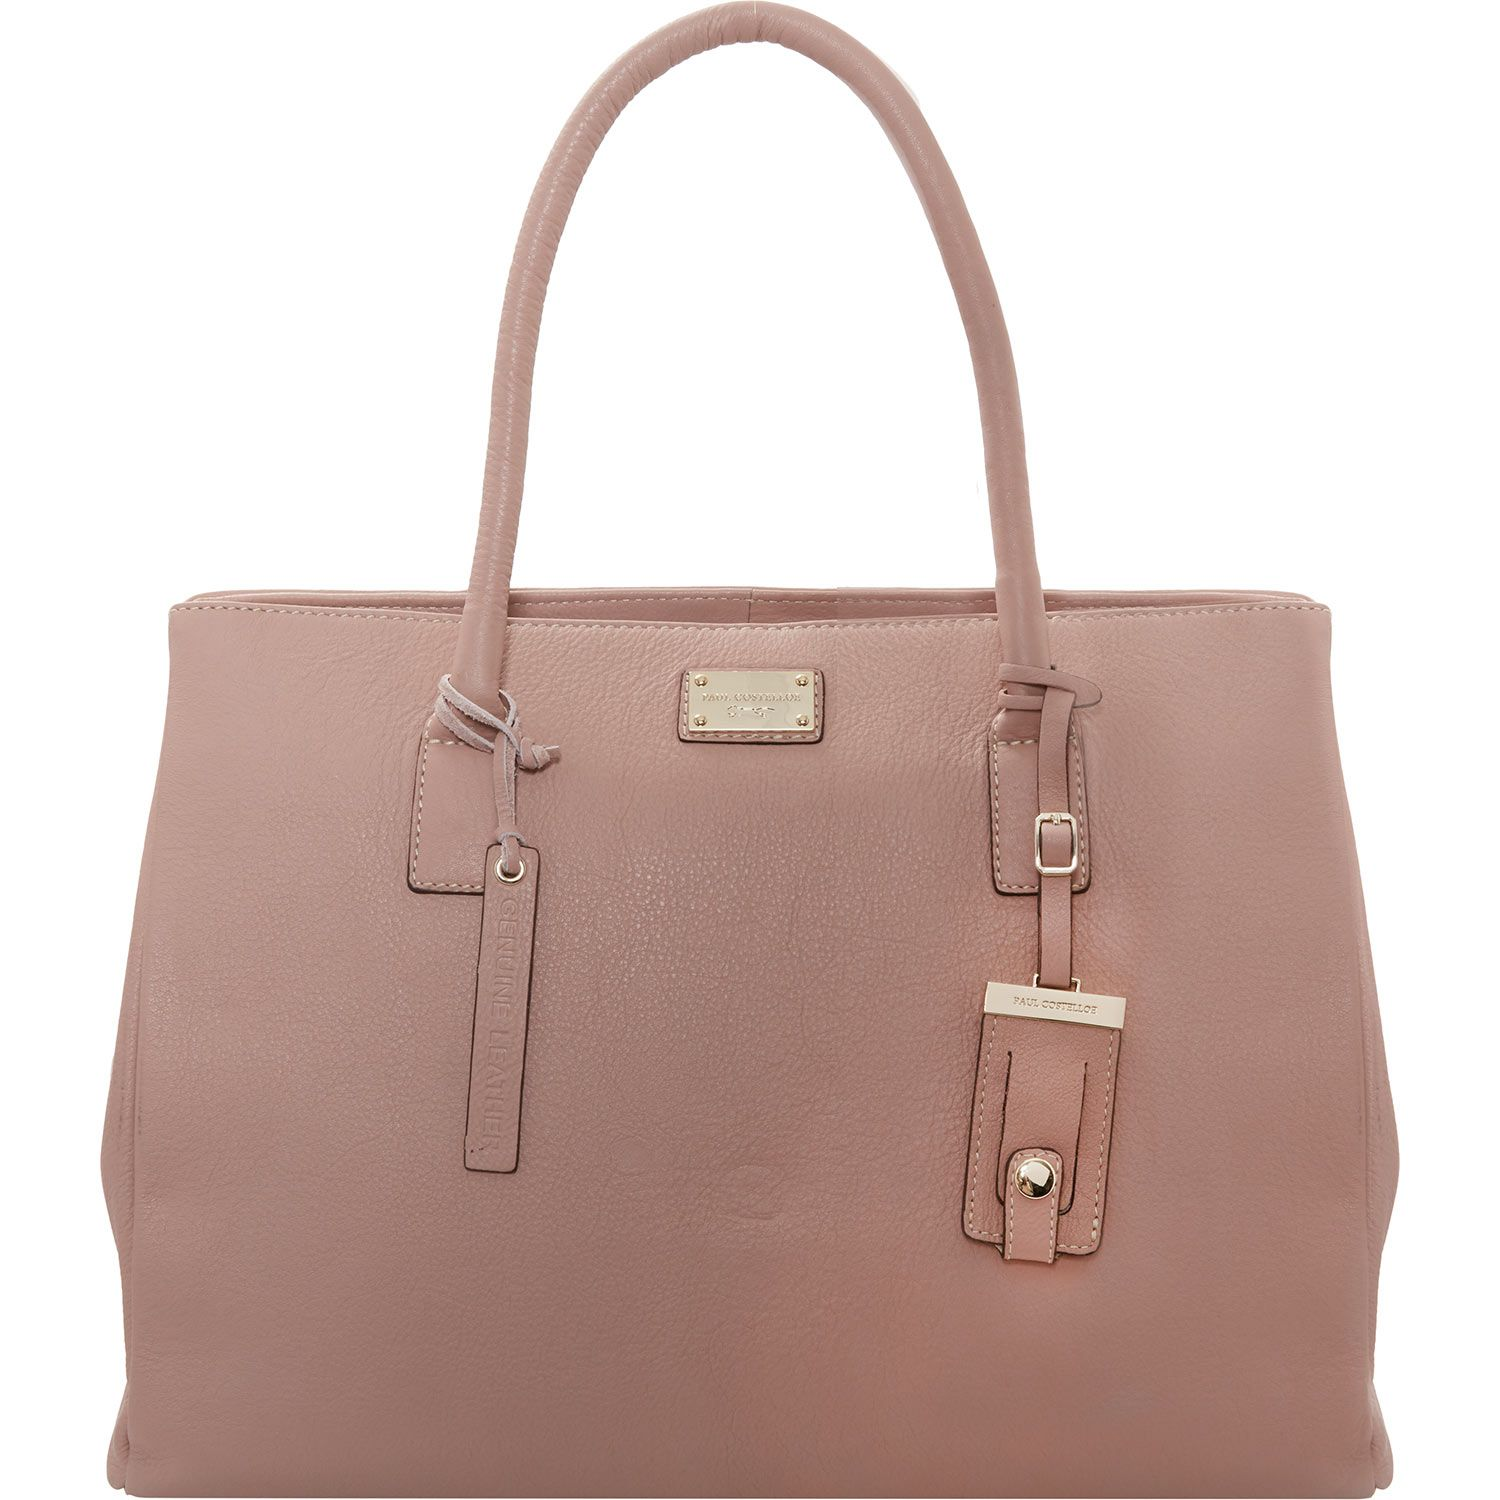 Paul Costelloe Dusky Pink Leather Tote Bag Tk Ma